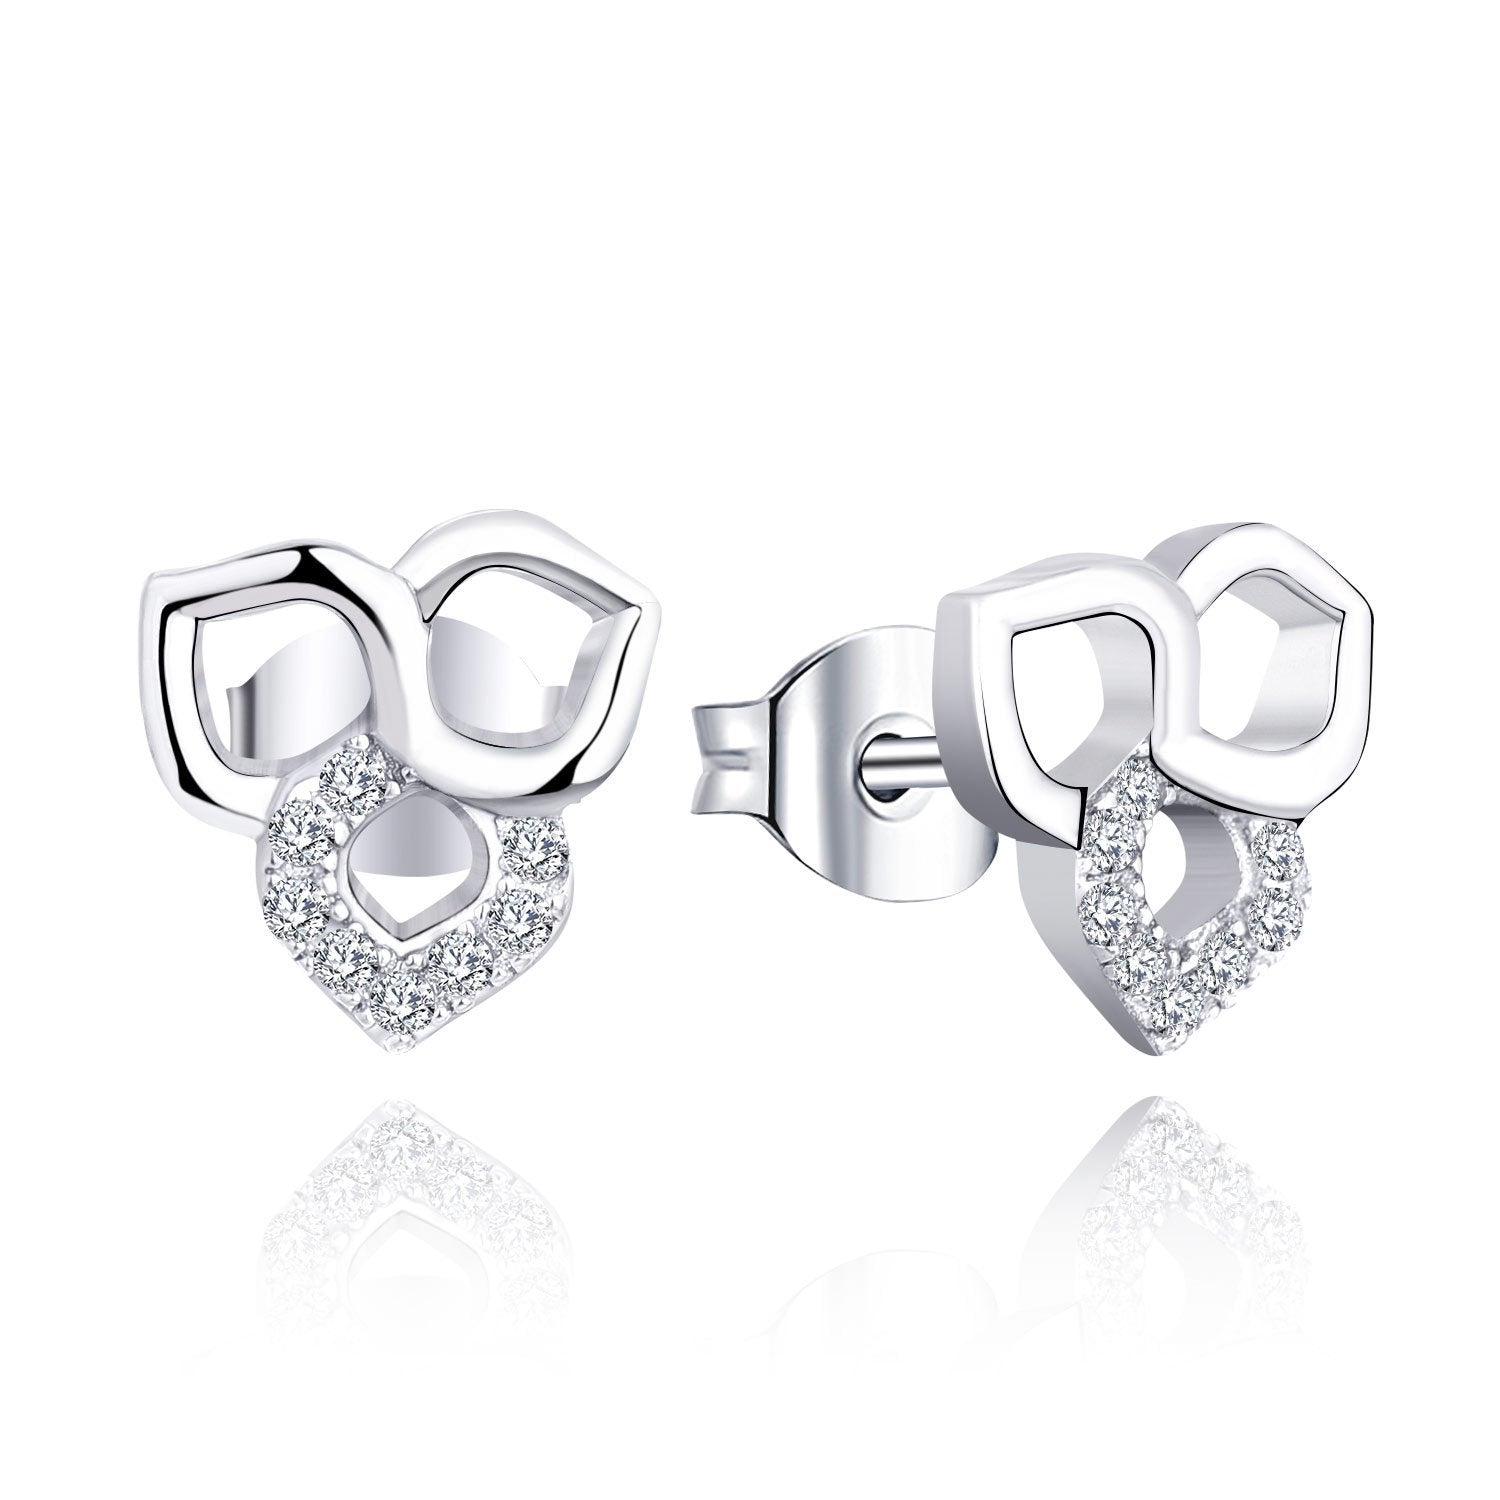 Farjary Fashion Trefoil Stud Earrings with 0.11cttw Diamond (9K White Gold )